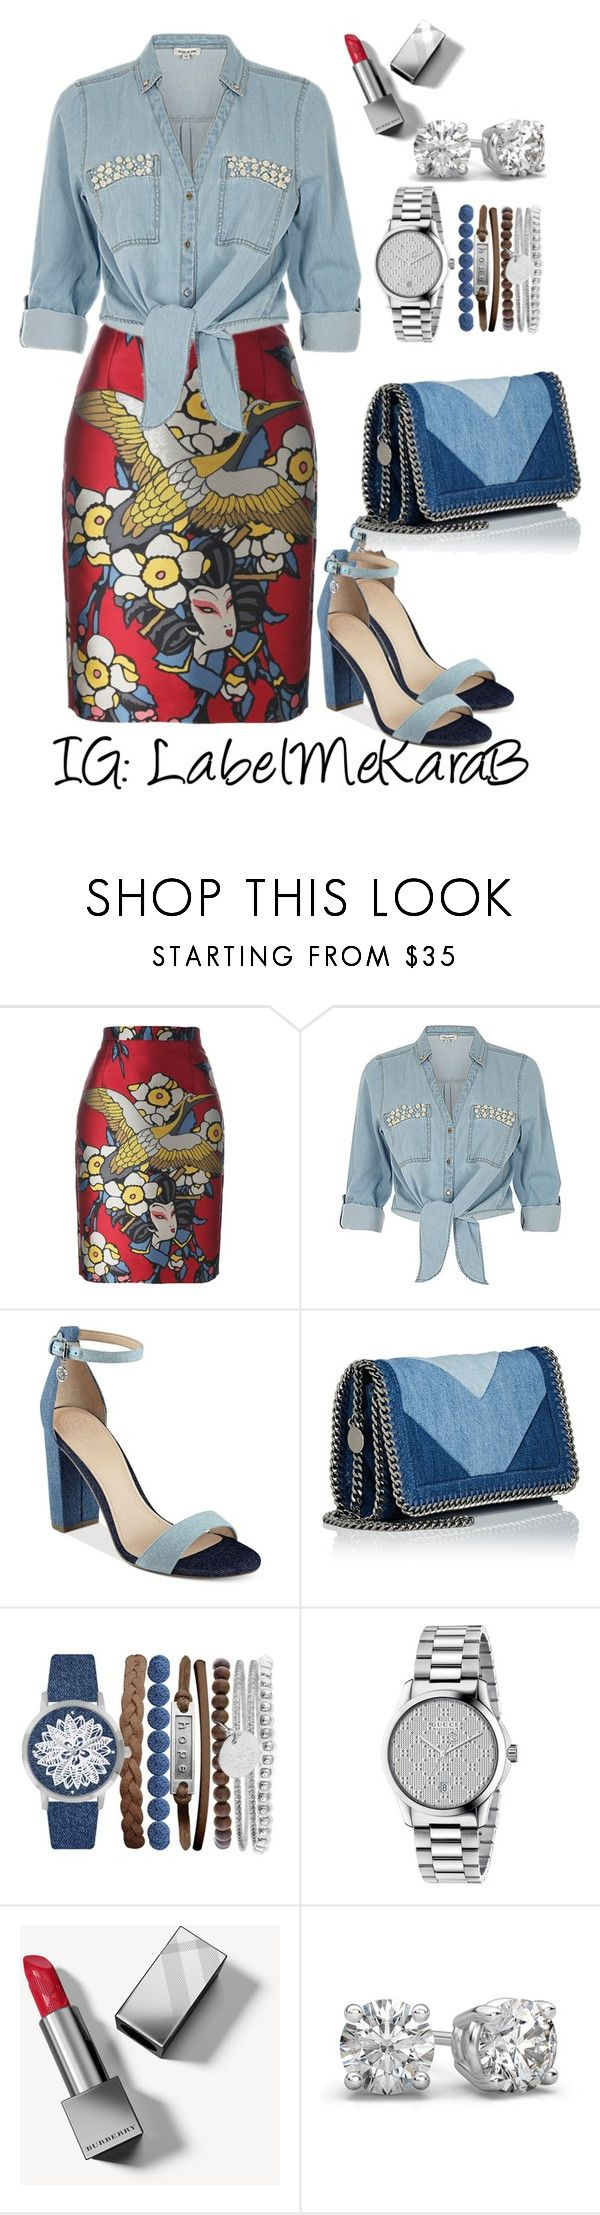 """KB020"" by labelmekarab on Polyvore featuring Dsquared2, ZAK, GUESS, STELLA McCARTNEY, Jessica Carlyle, Gucci and Burberry"